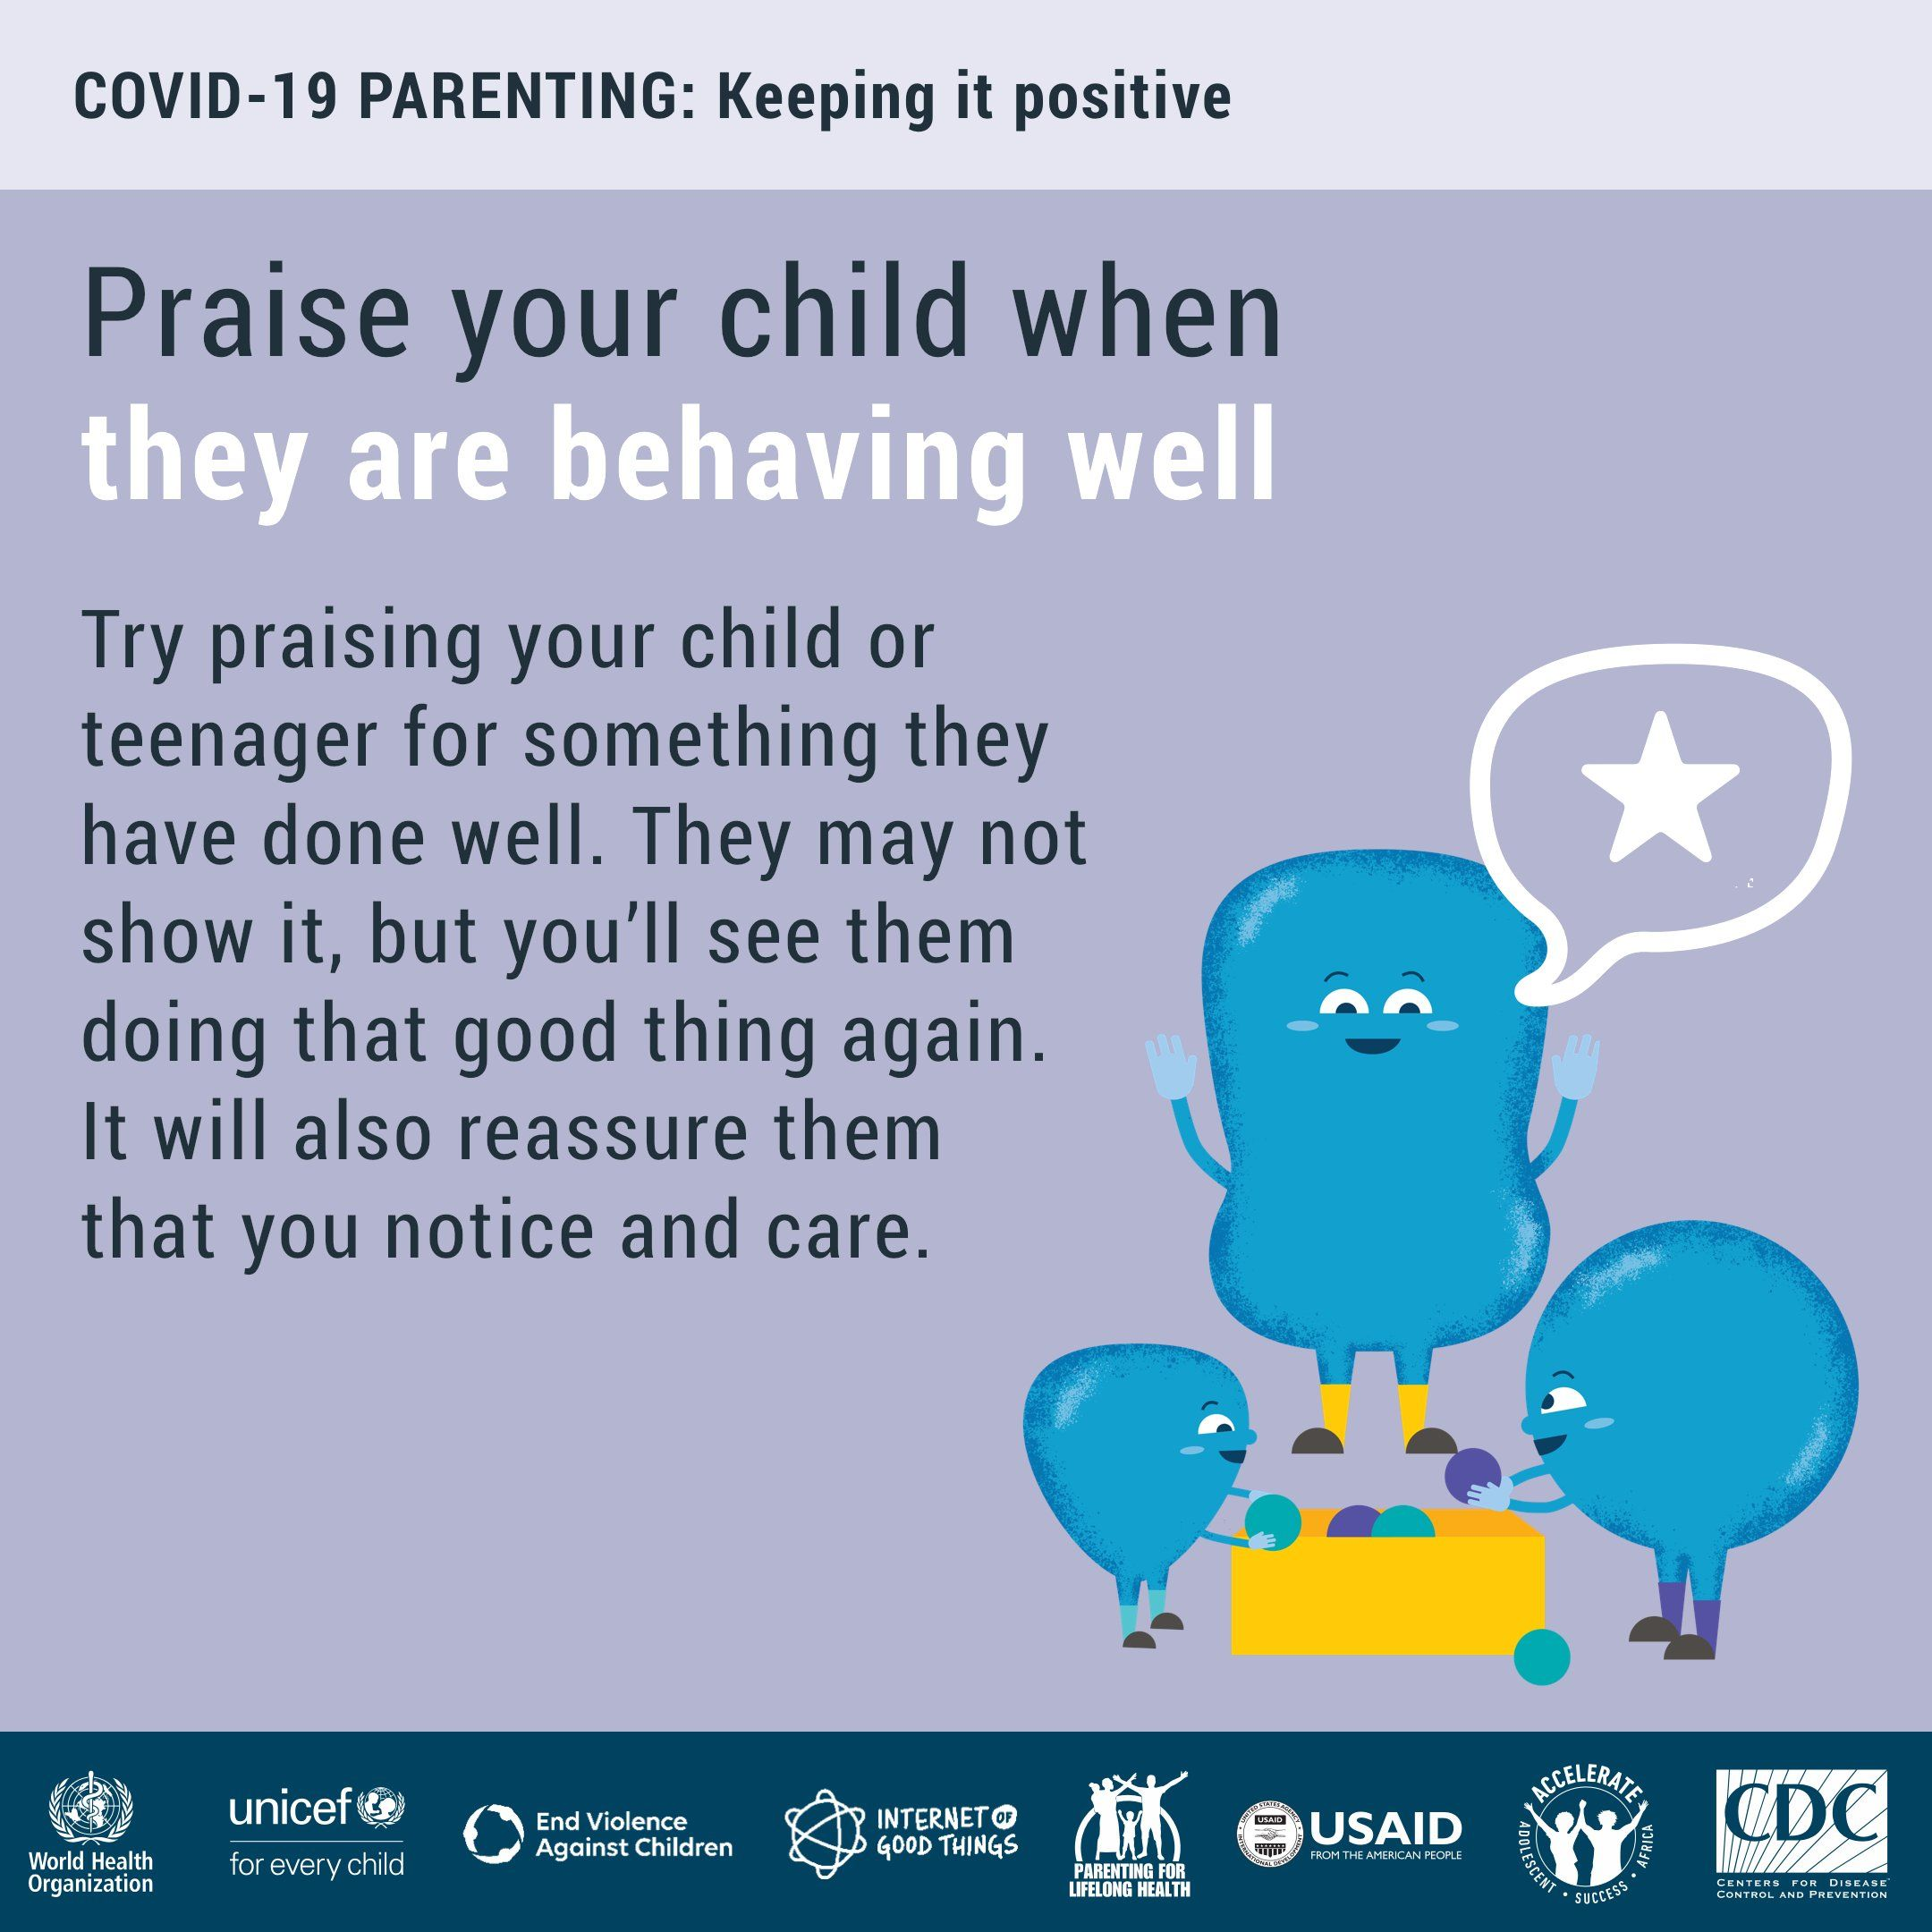 Praise is powerful. Try praising your child or teenager